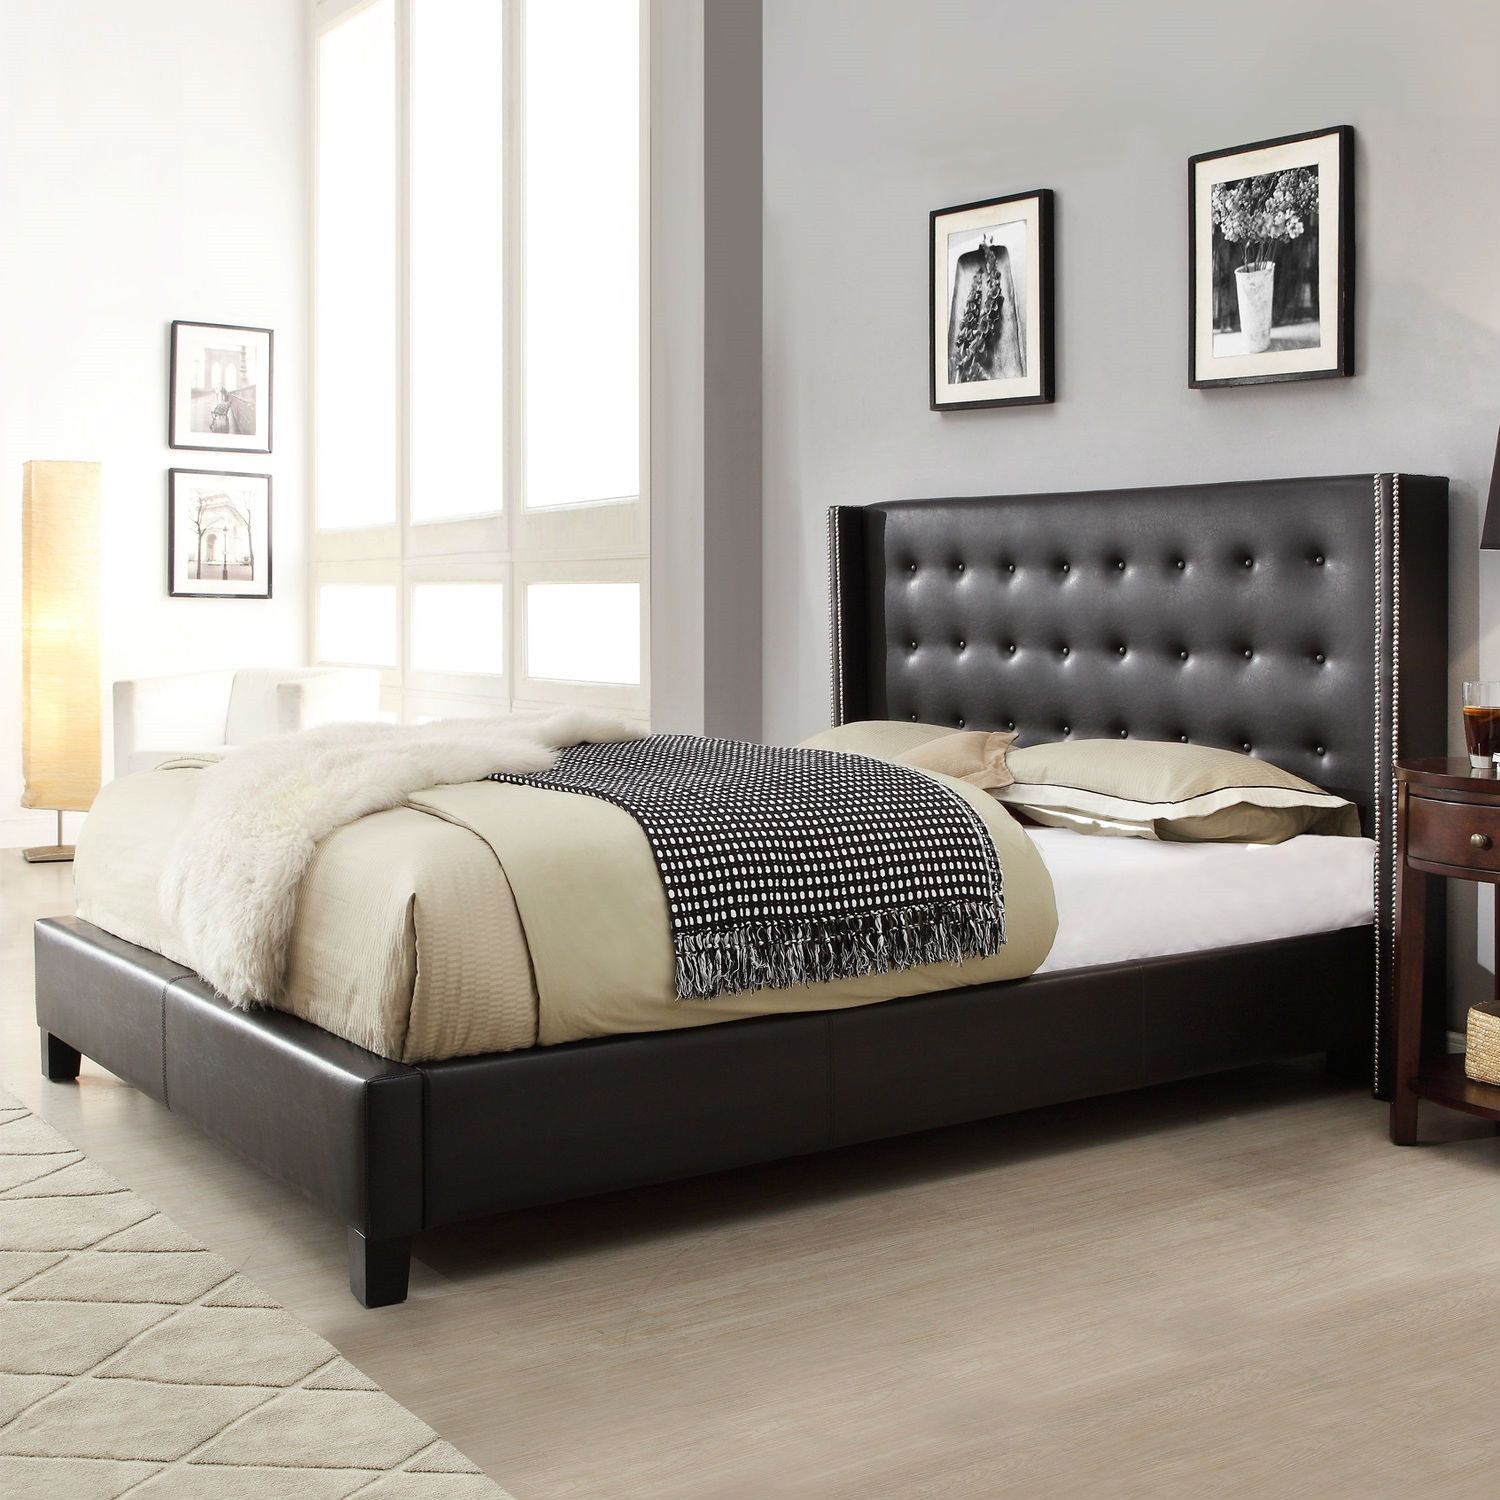 Queen size Black Faux Leather Upholstered Bed with